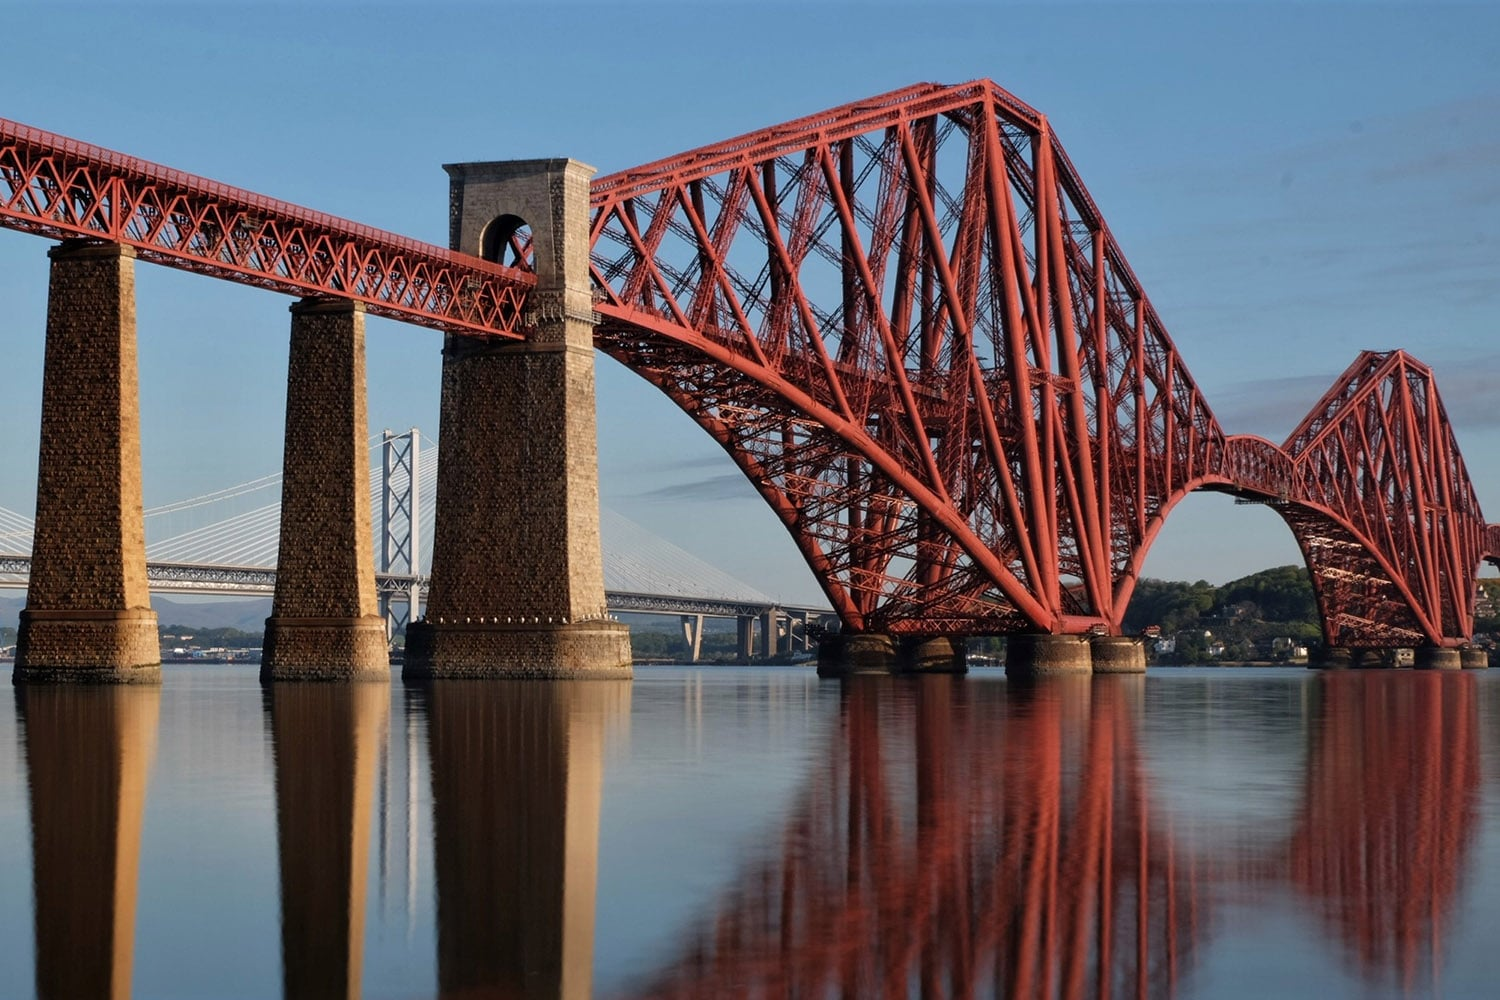 The Forth Railway Bridge is a UNESCO world heritage site and can be visited on a private tour of Scotland